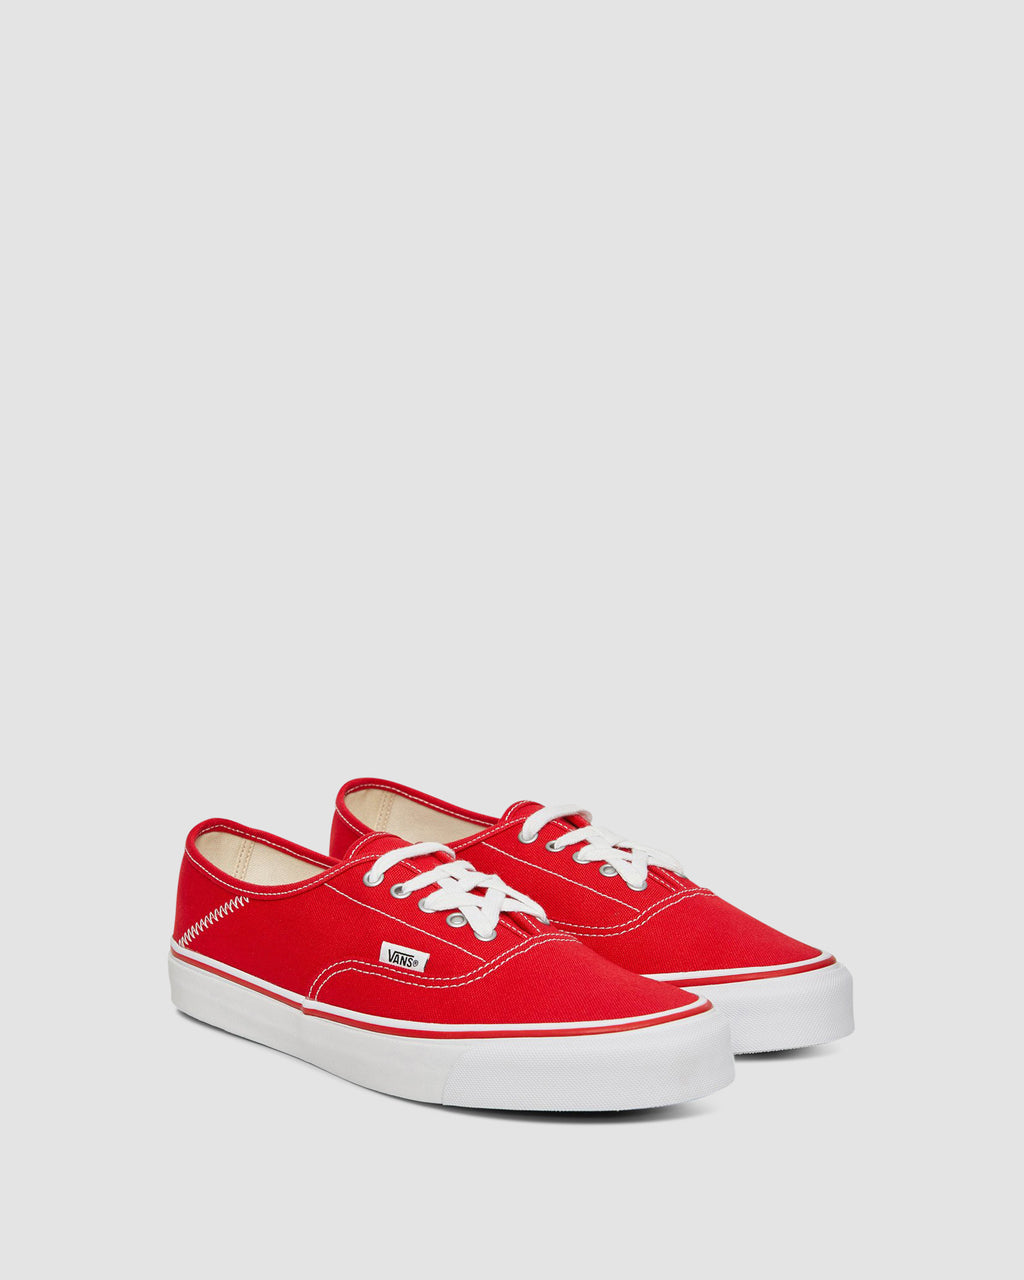 40f78d882ecfe3 VANS OG STYLE 43 AUTHENTIC FOLD DOWN TRUE RED – alyx